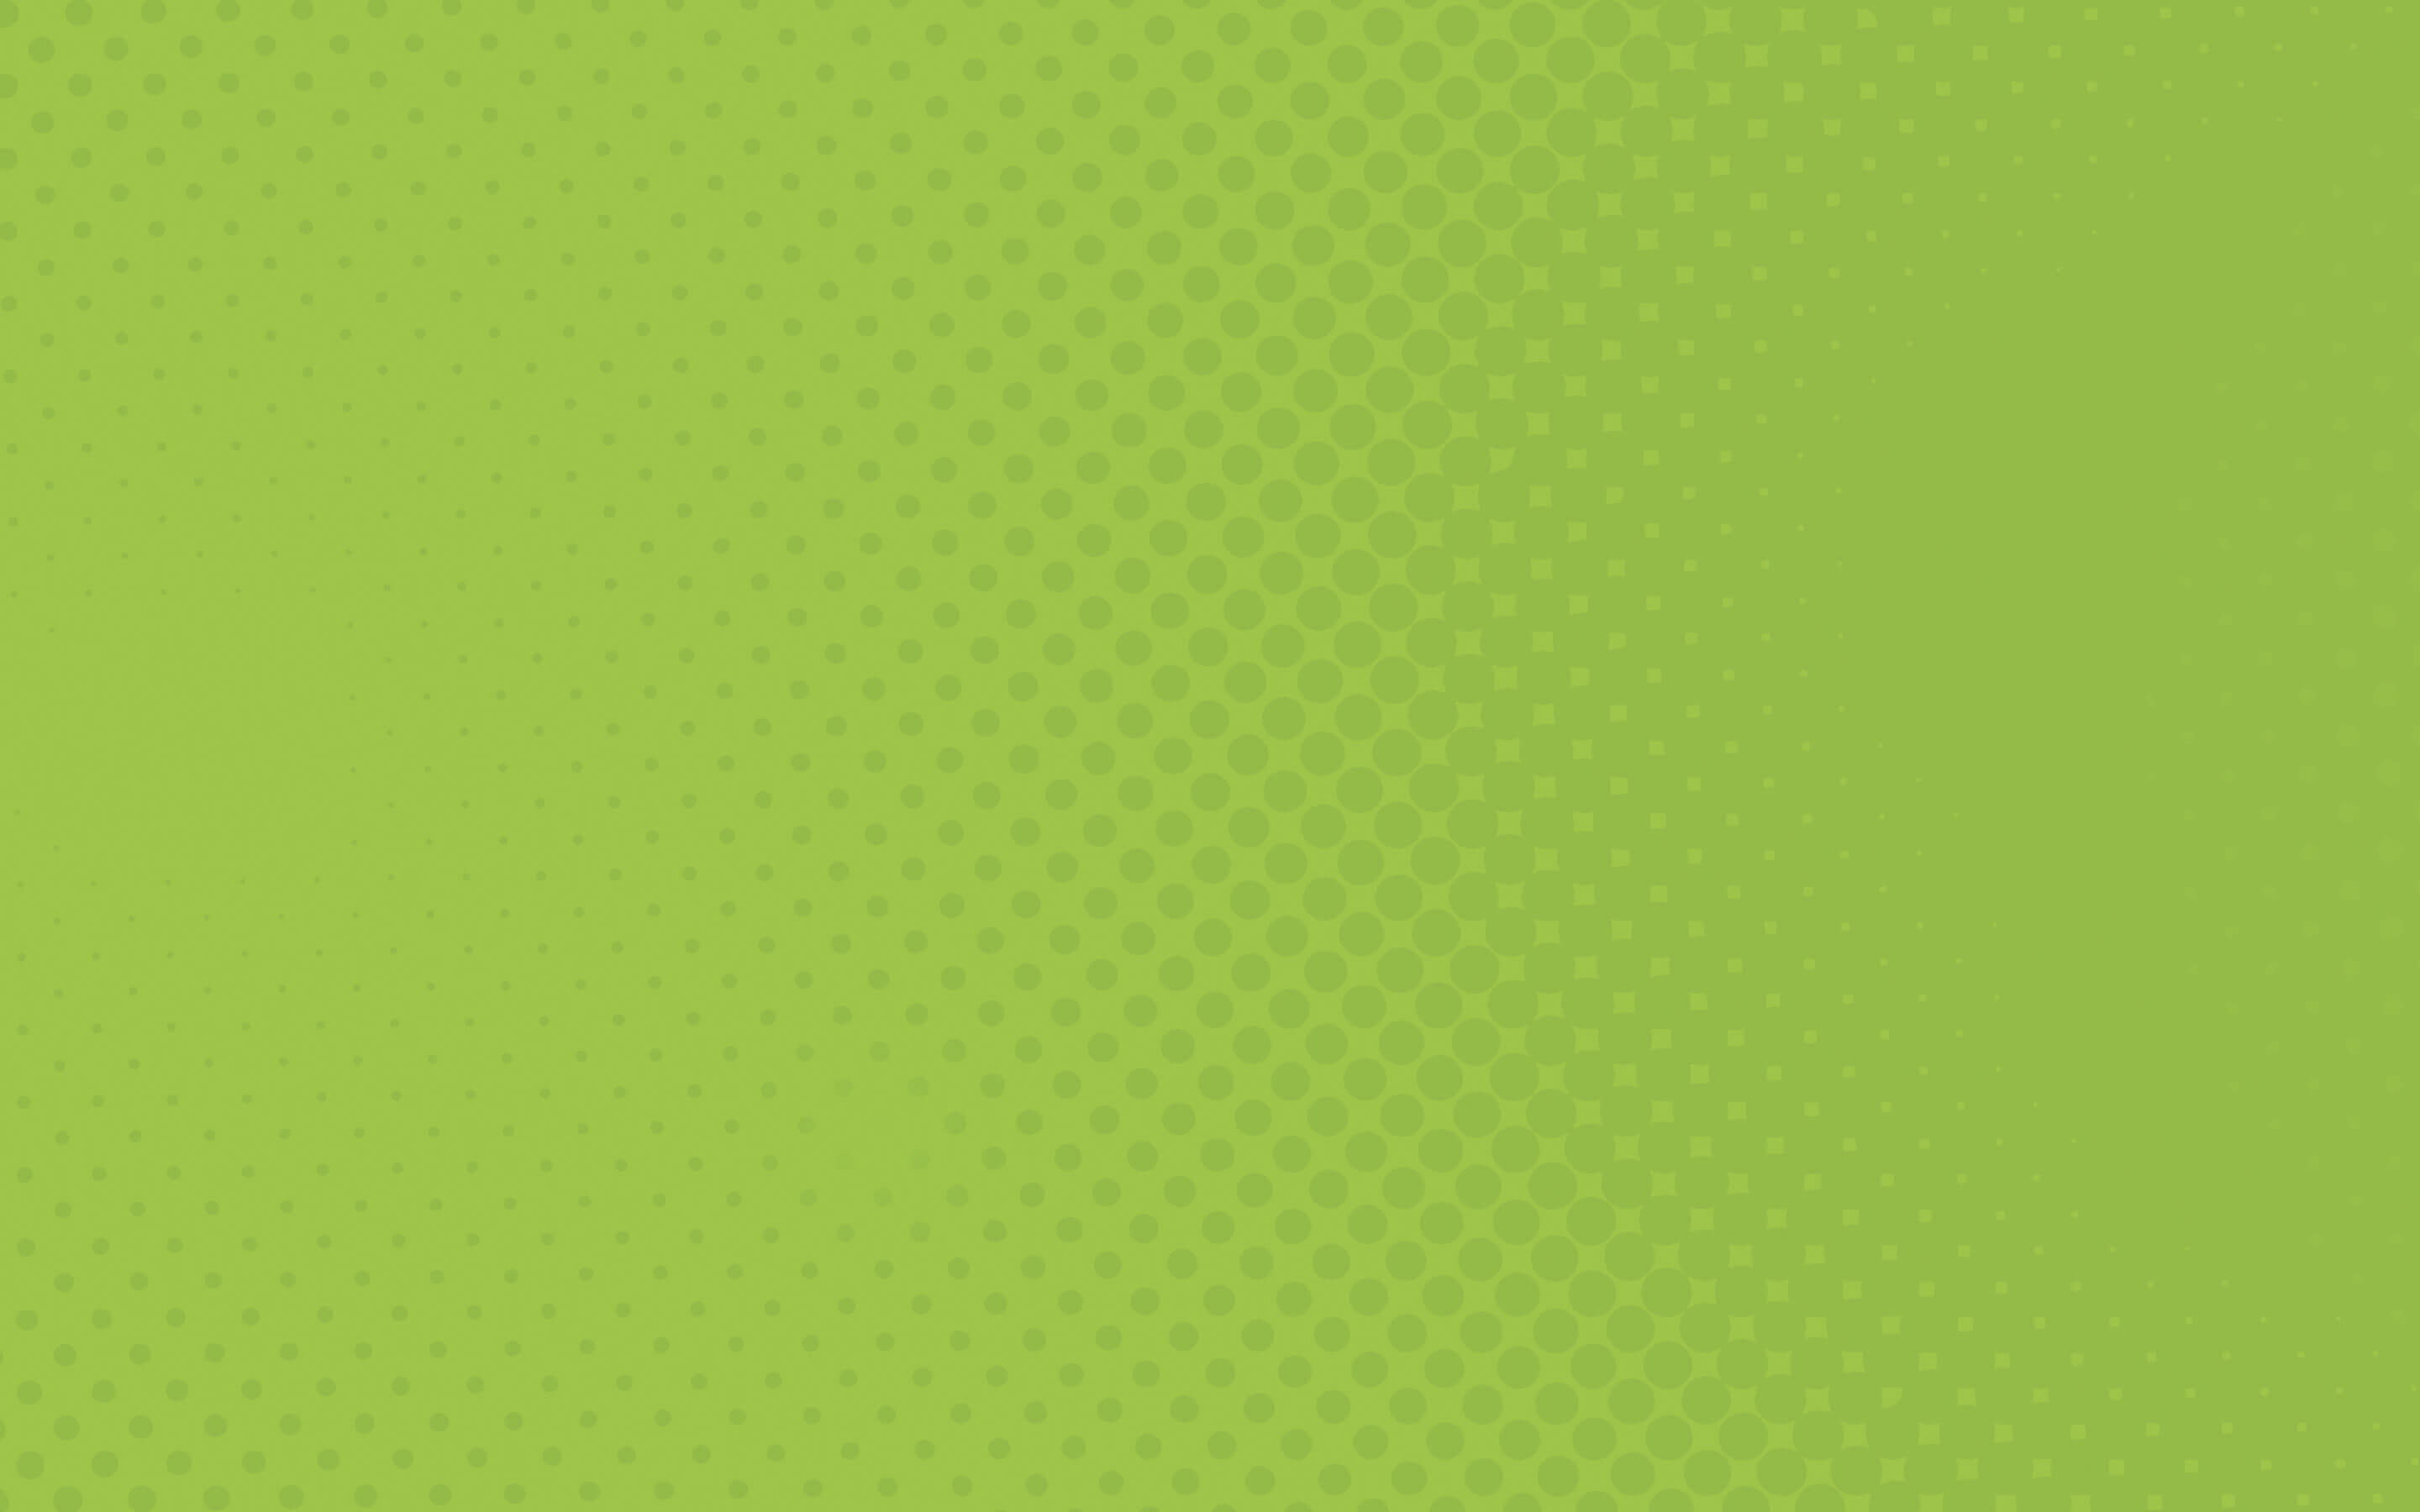 LOTTO MAX green background